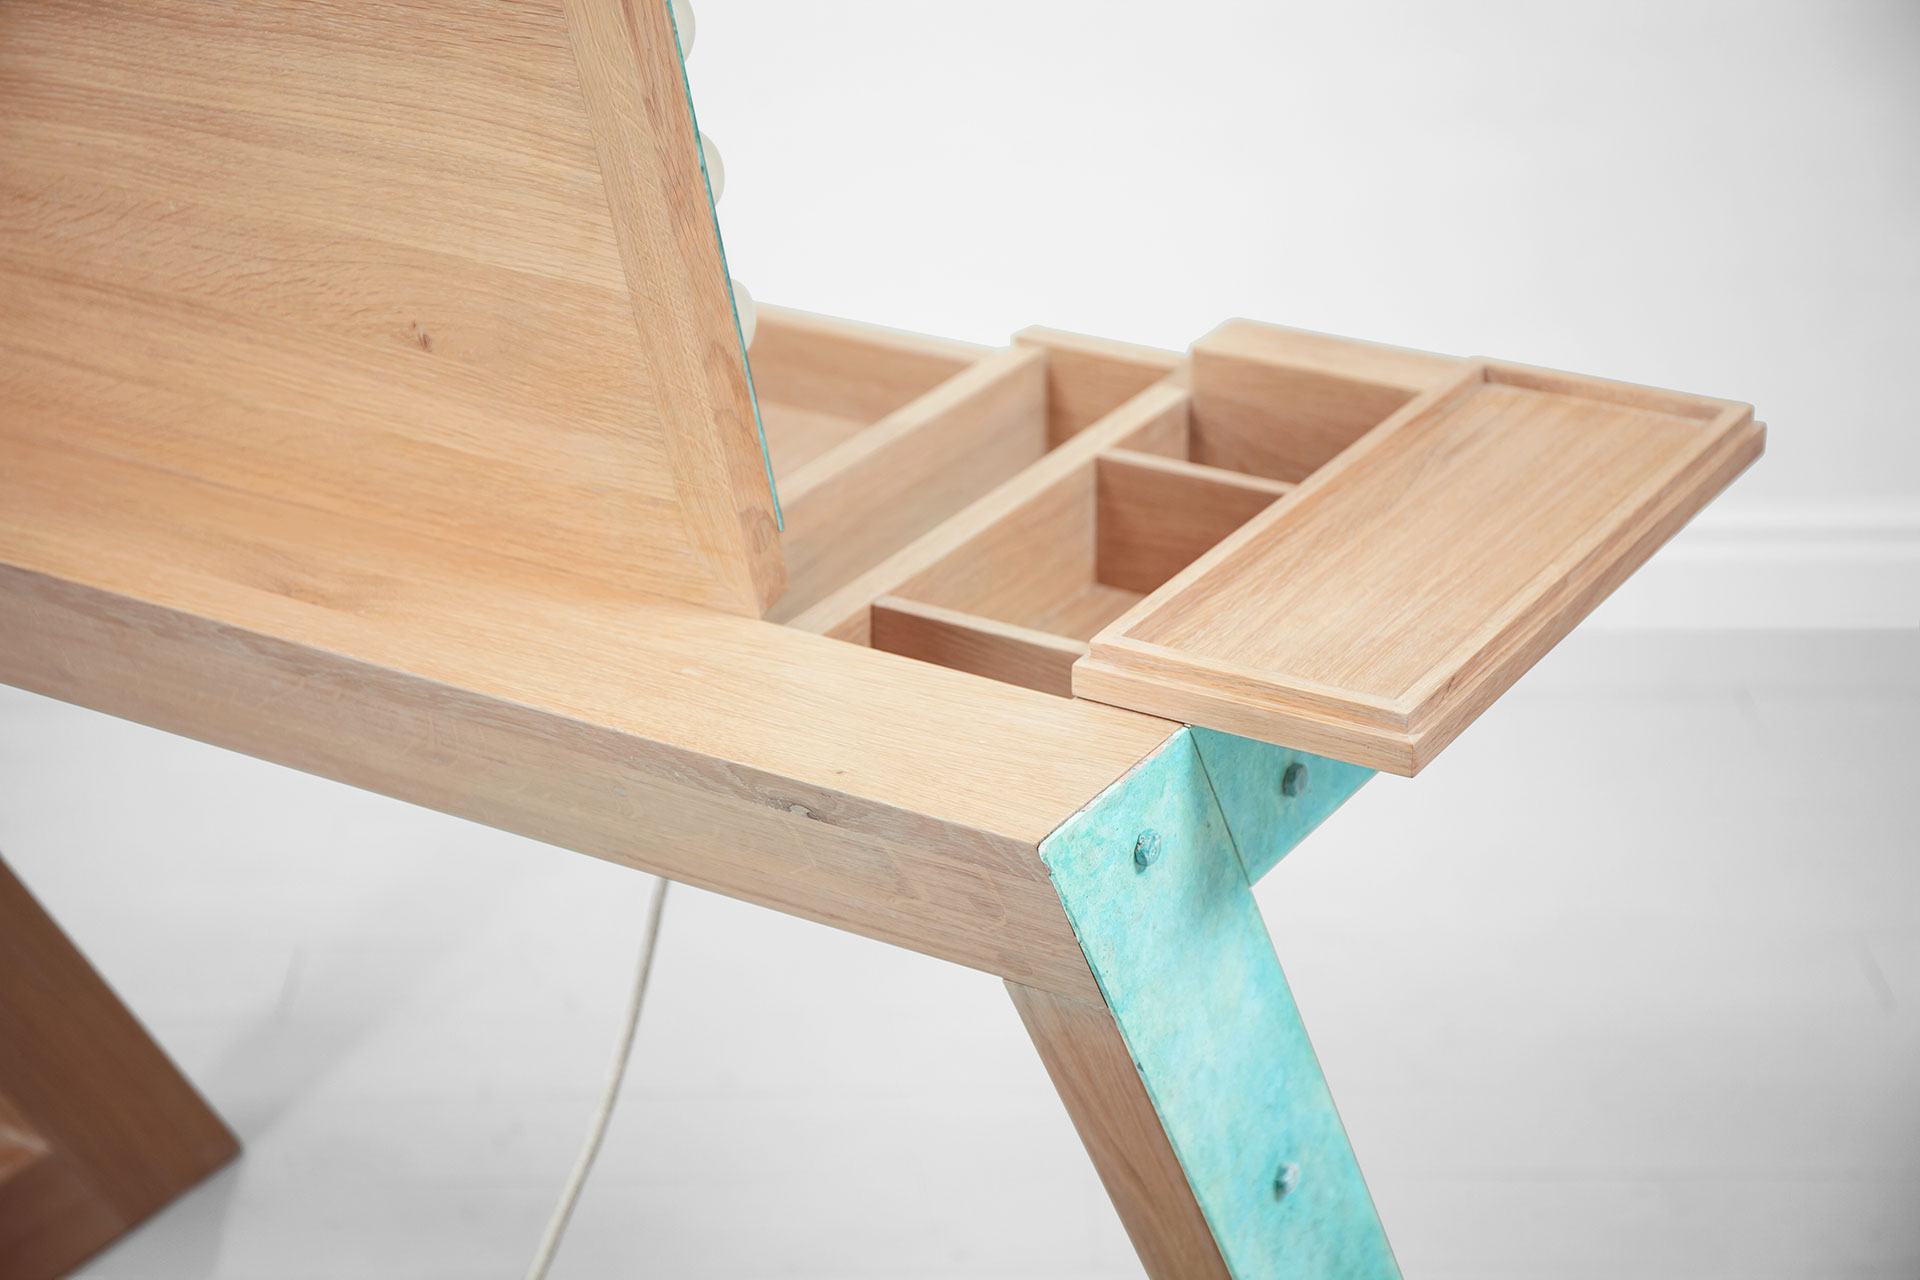 Designers vanity table in turquoise and solid wood